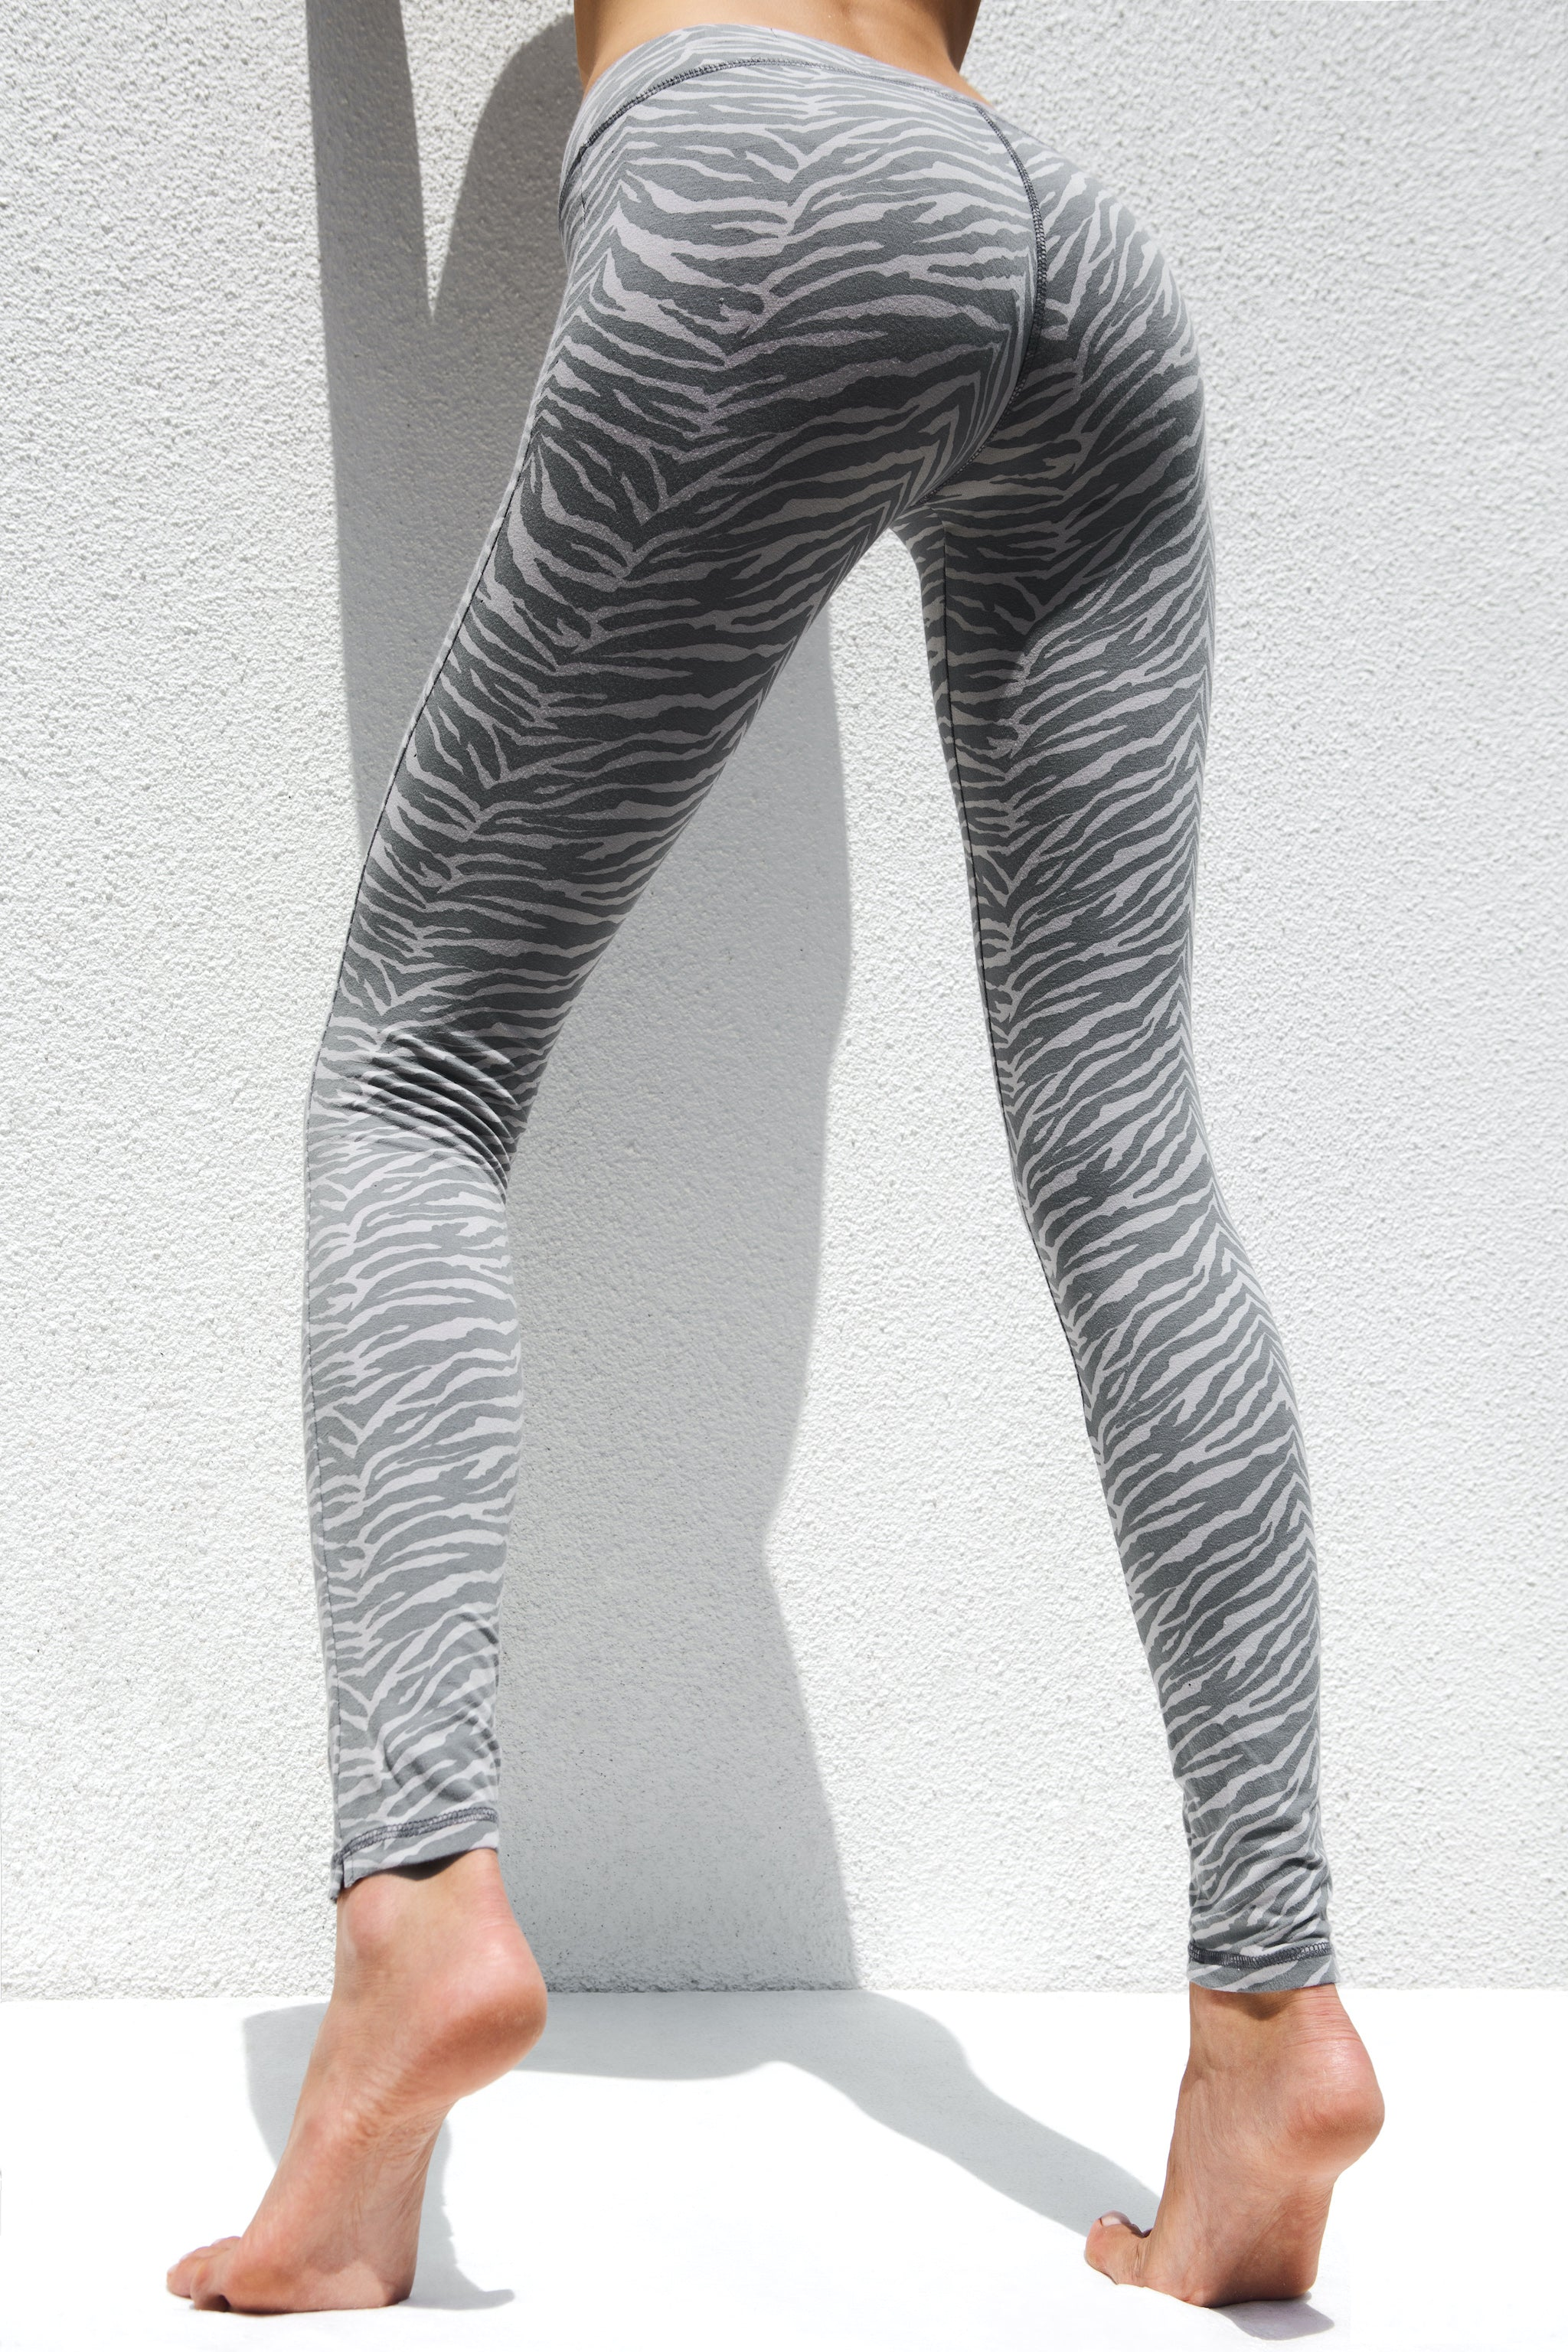 Leggings Zebra Grey